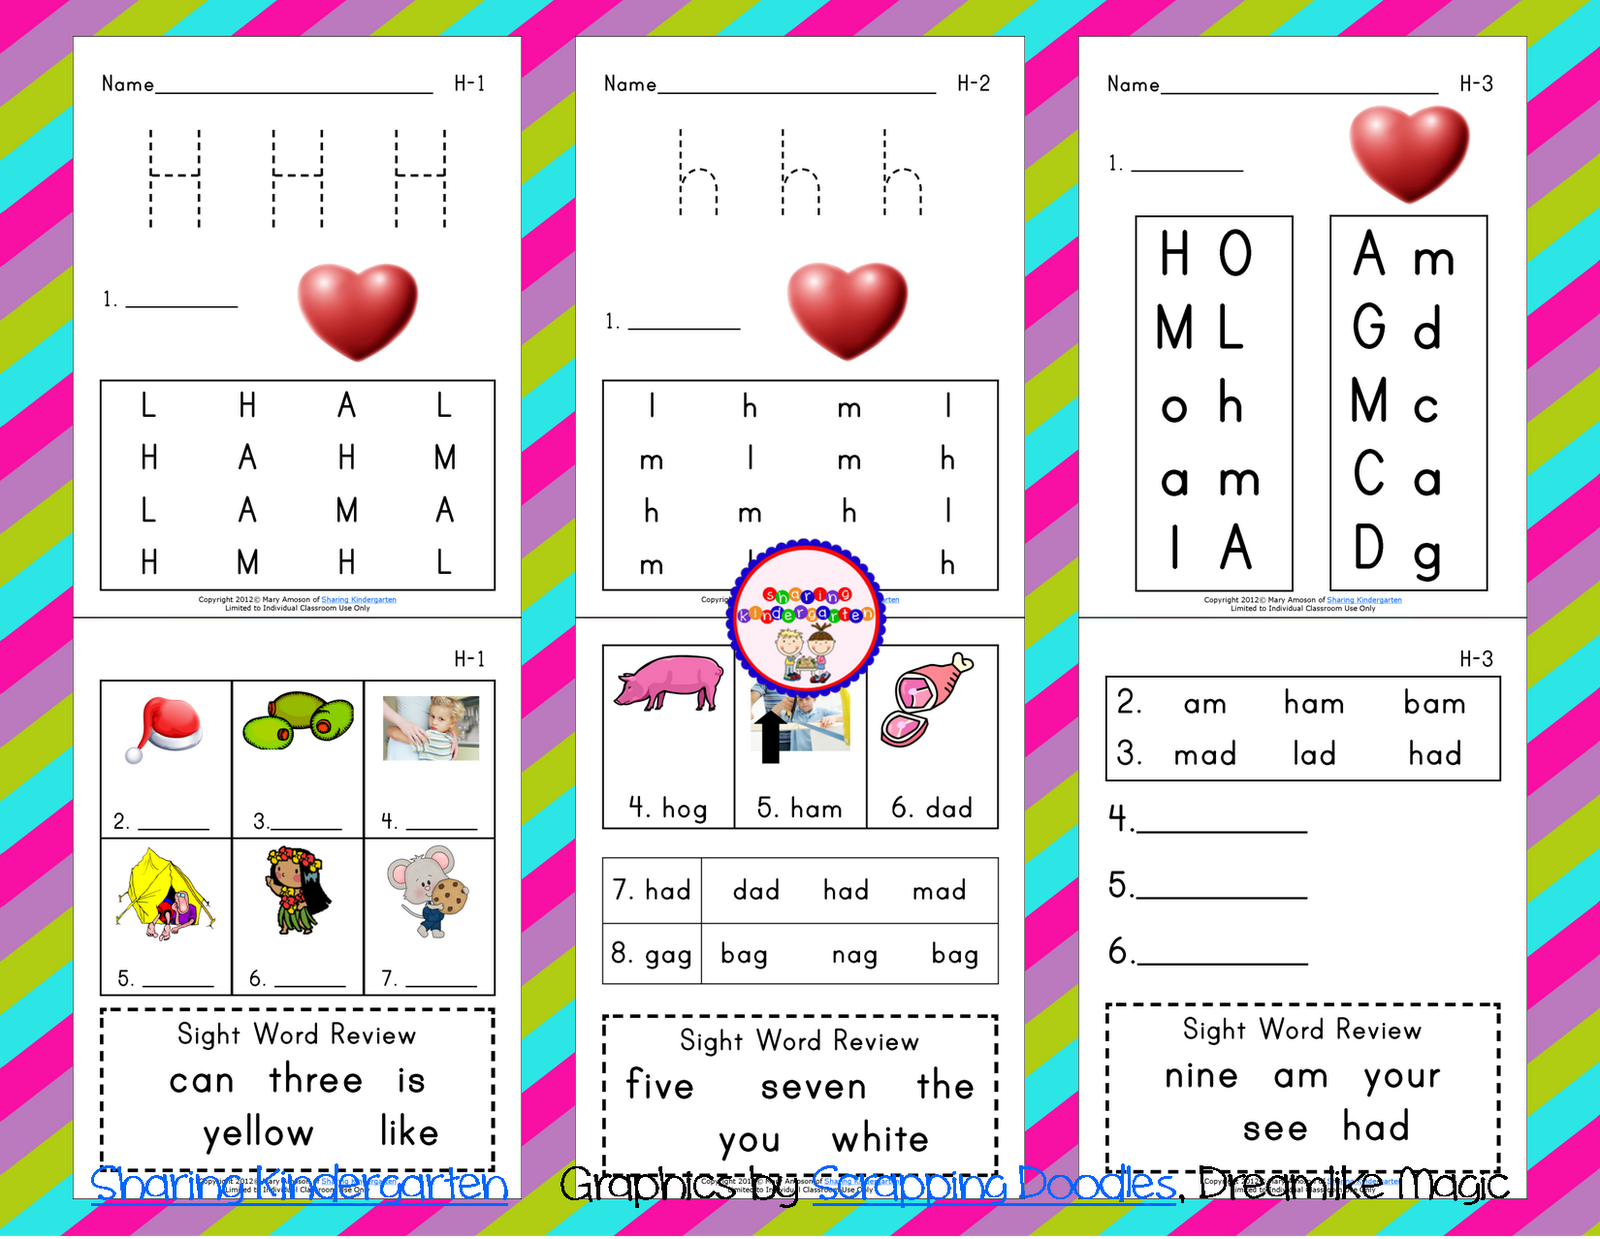 Worksheet How To Teach Phonics To Kids At Home phonics game for kids child development and teaching many of the word games that are available do this is usually introduced later during first grade it also accompanied by rea